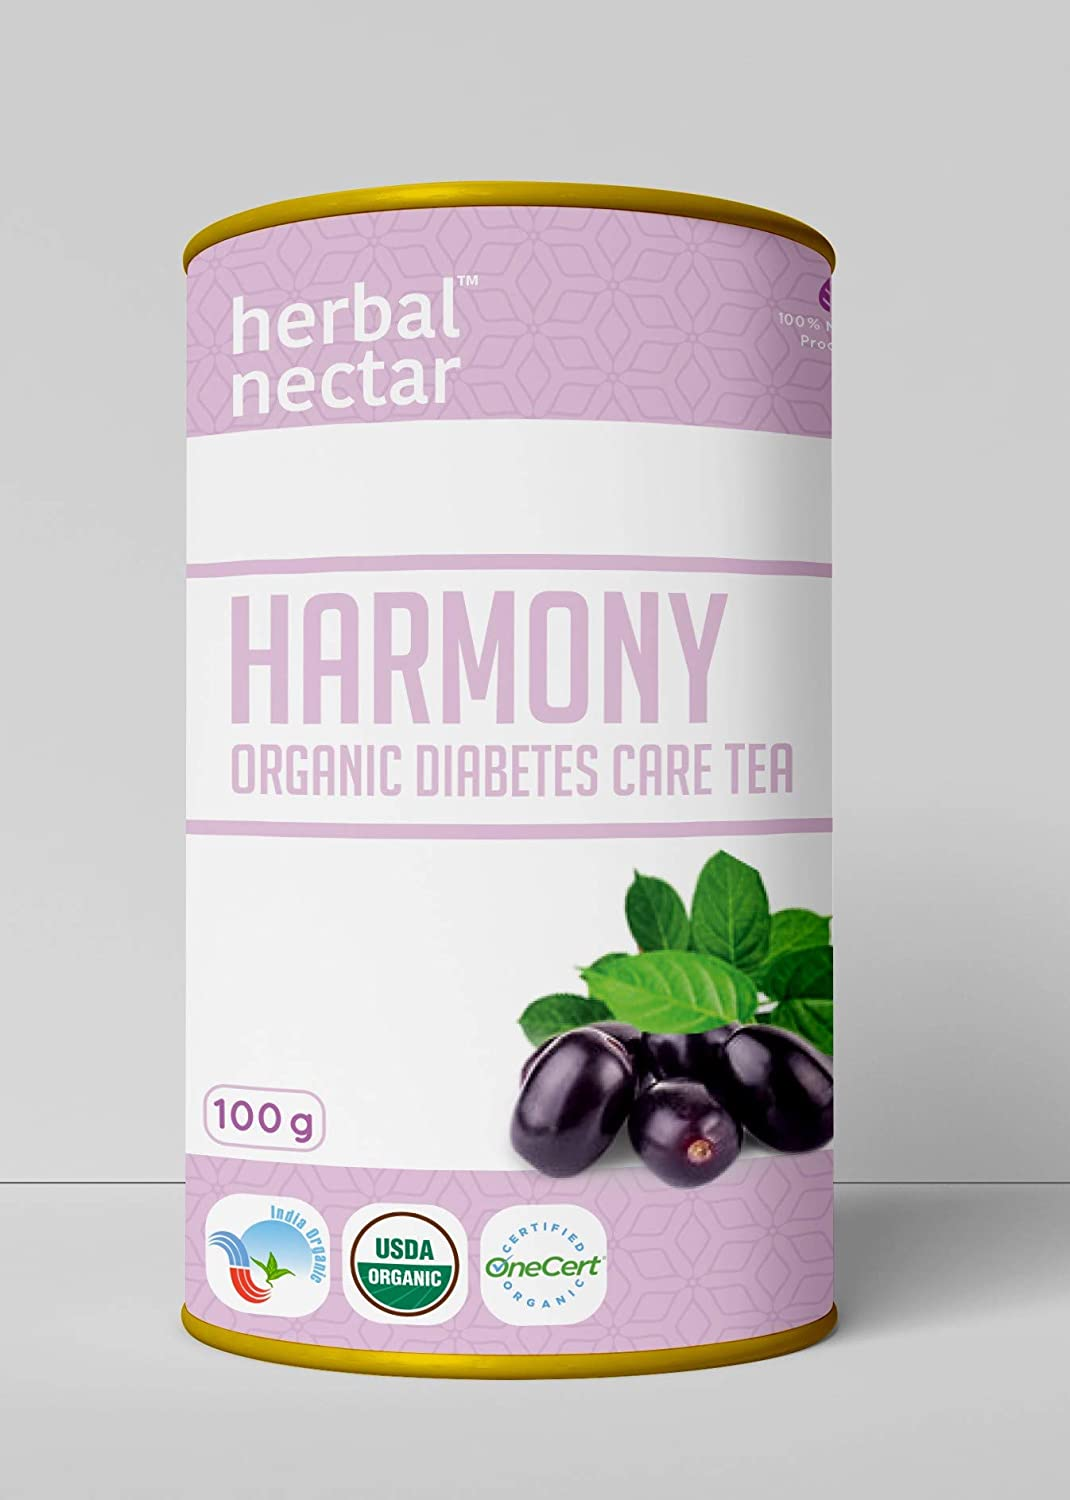 Organic Diabetes Care Tea online